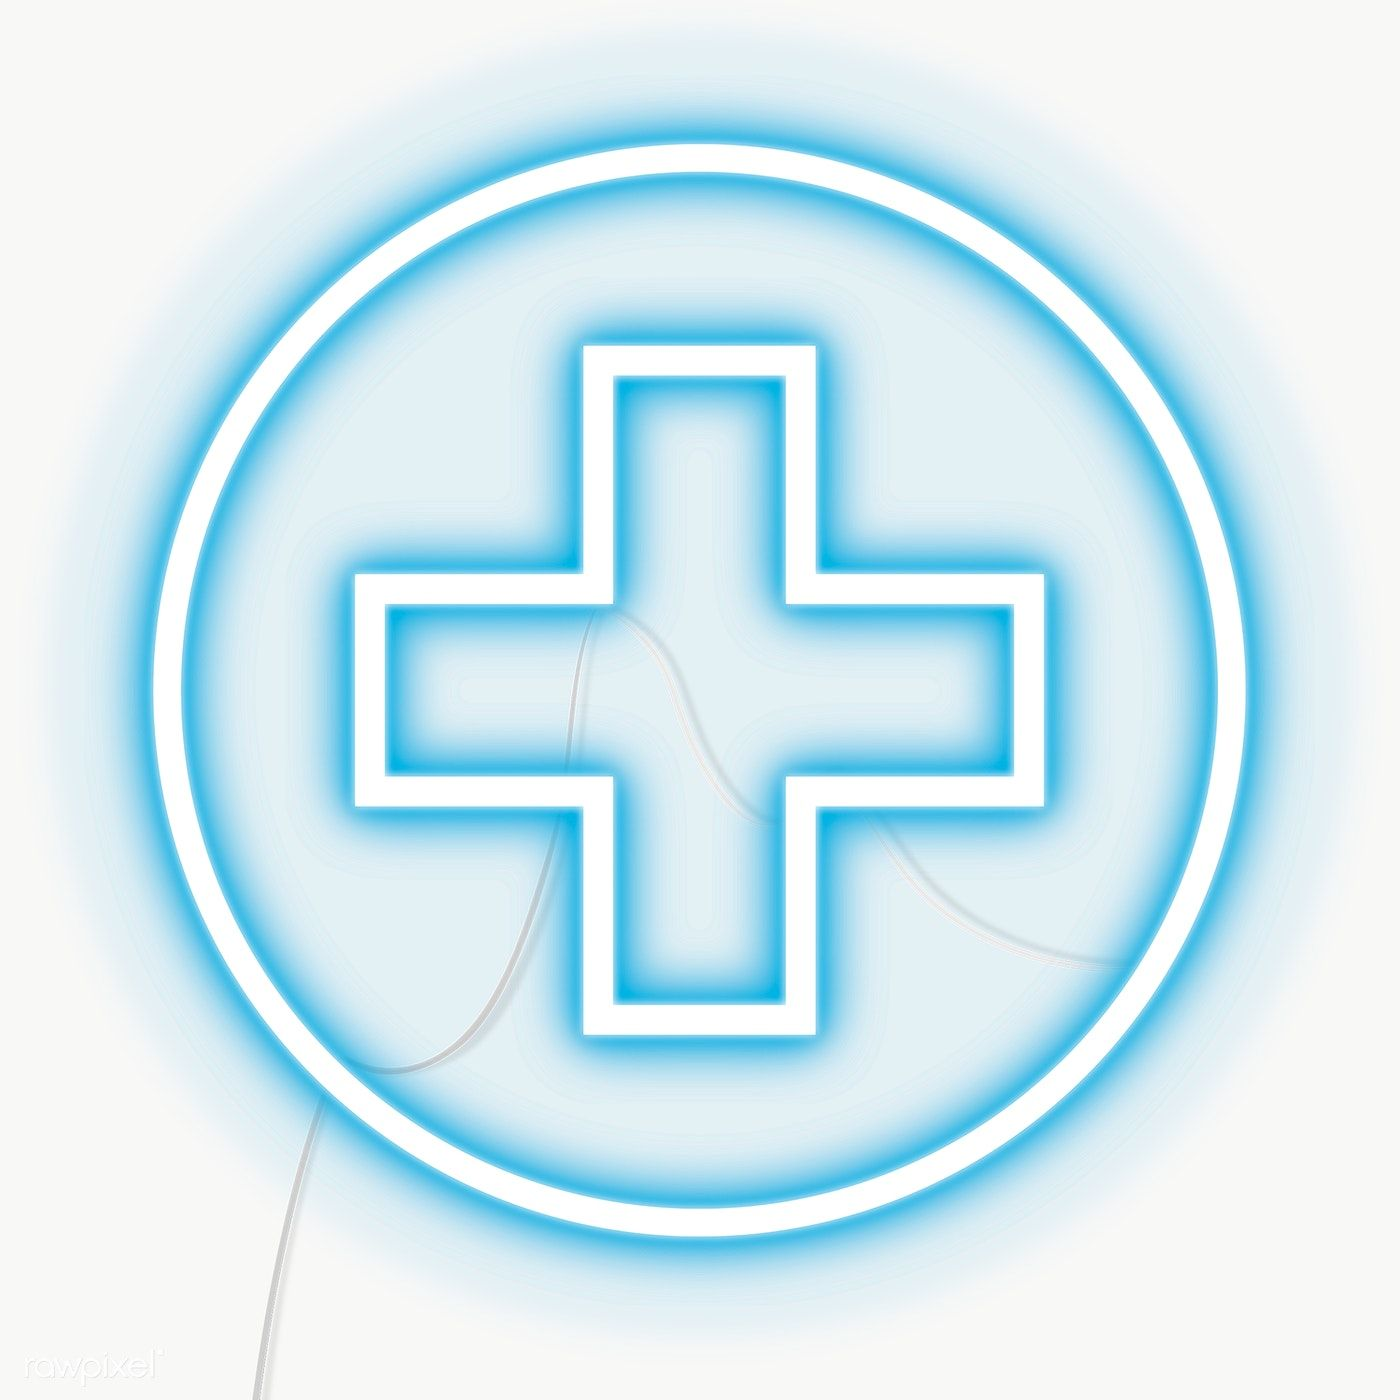 Blue Cross Neon Sign Transparent Png Free Image By Rawpixel Com Chayanit